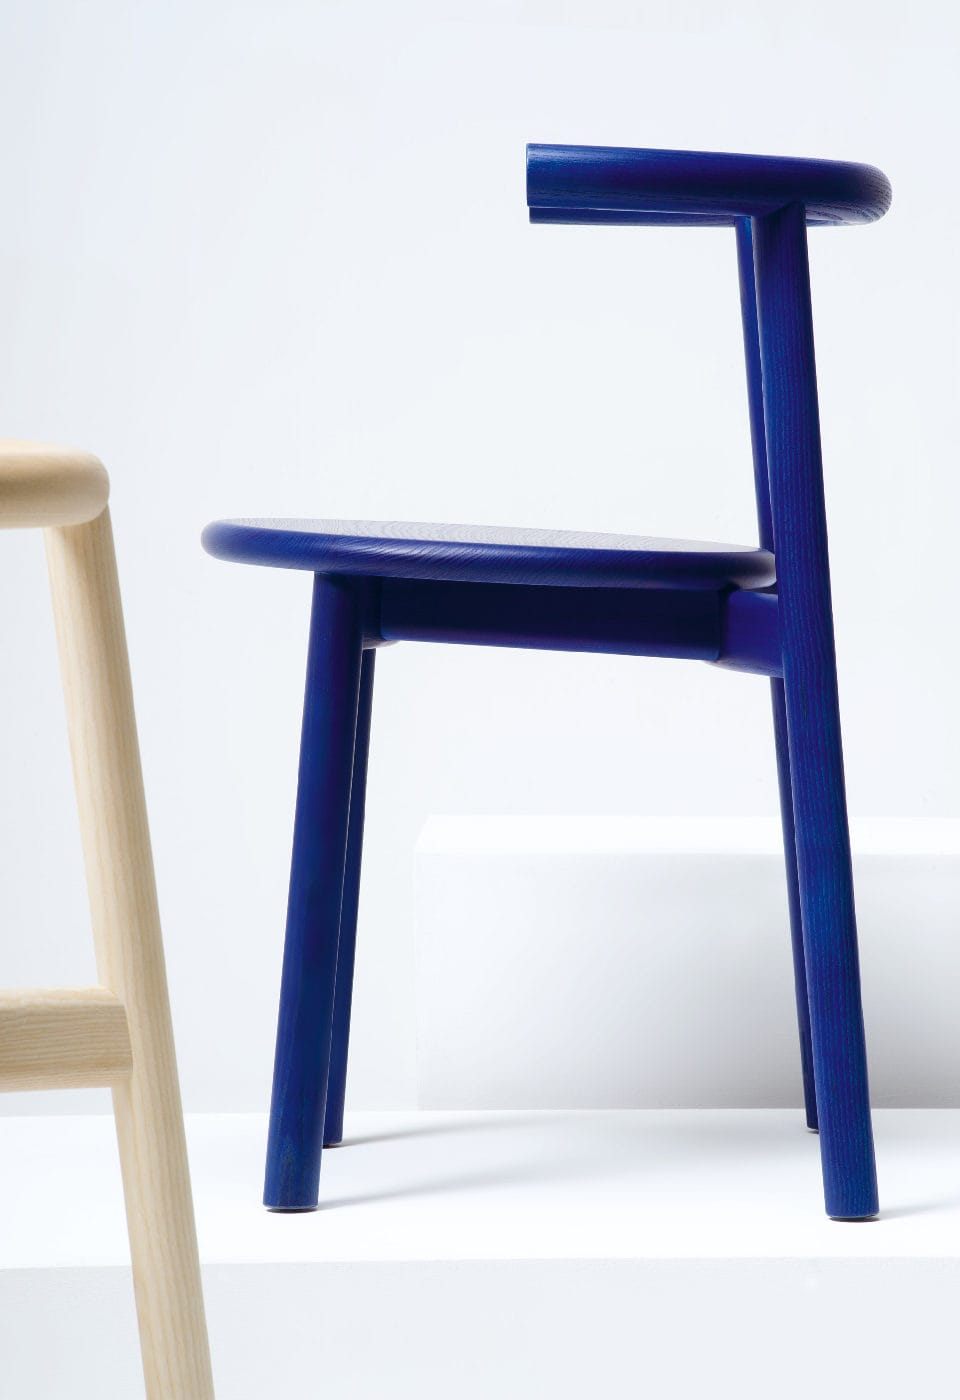 Mc5 Solo Chair By Studio Nitzan Cohen For Mattiazzi